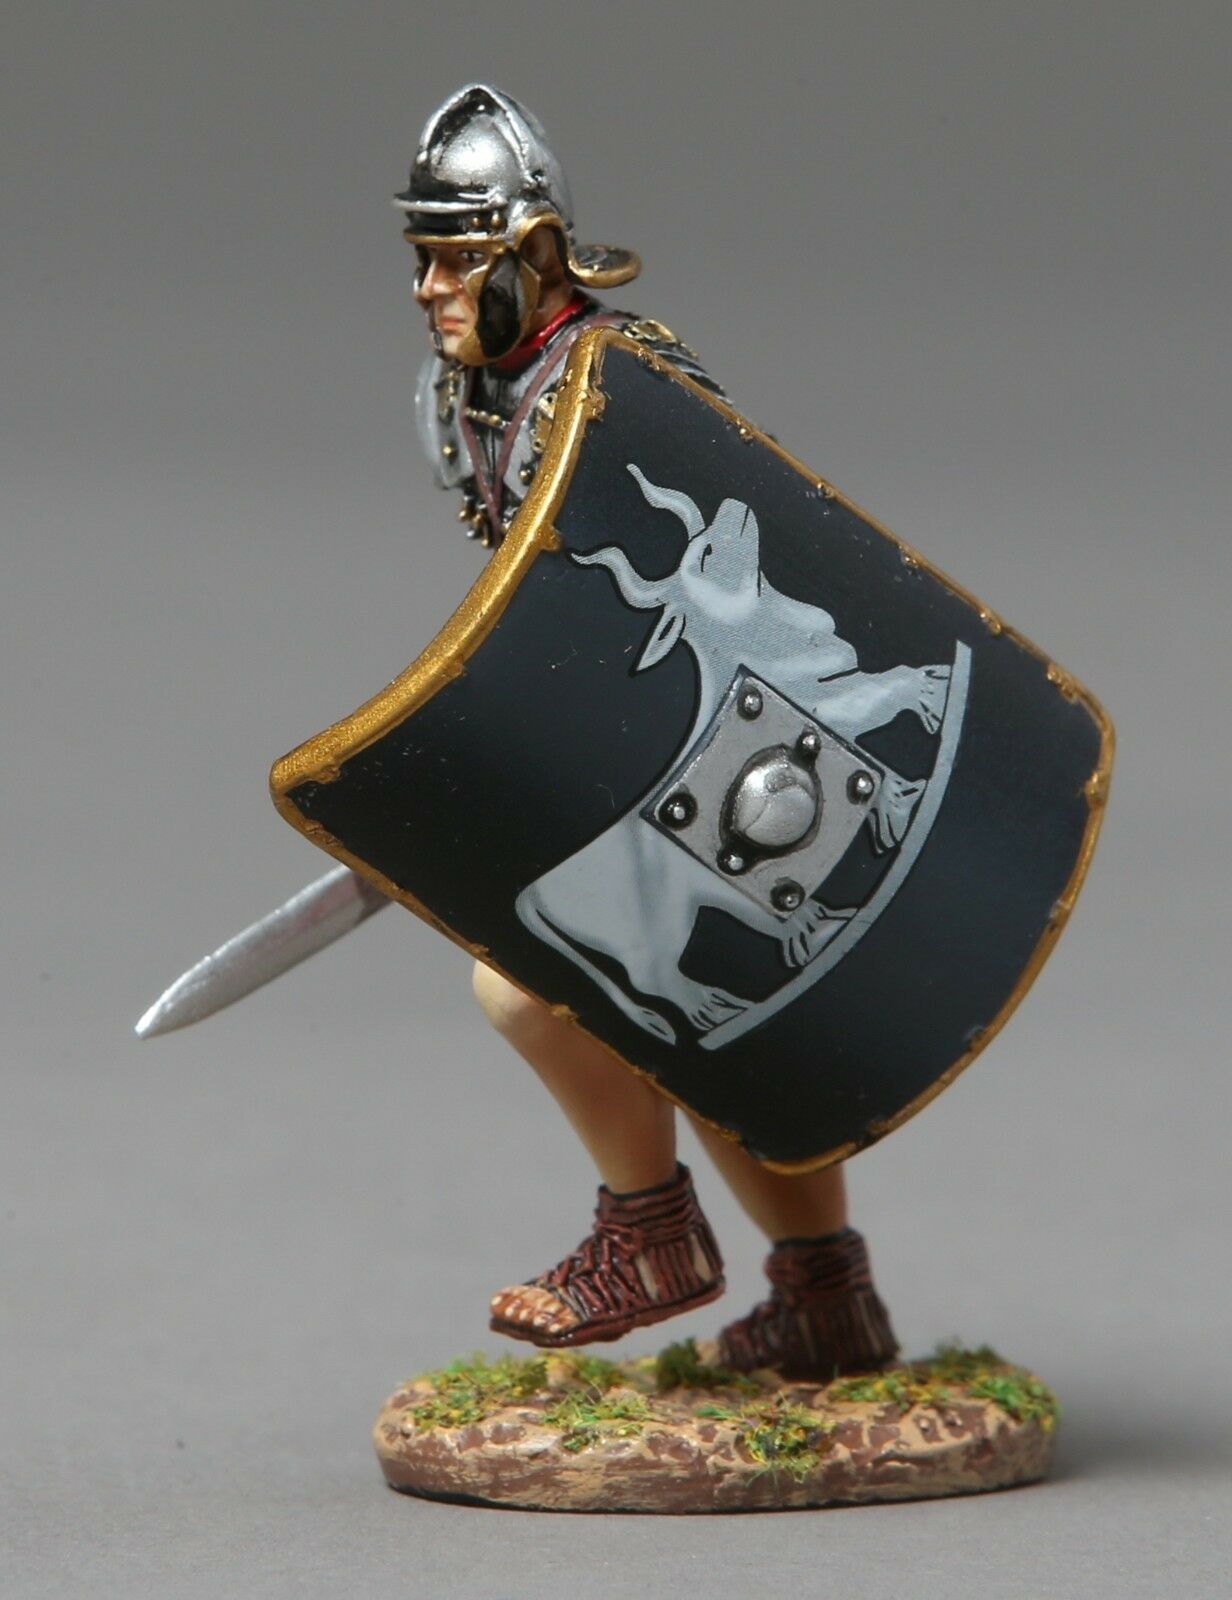 Thomas Gunn Roman Empire ROM084C 9TH Legion Roman Ladung MIB